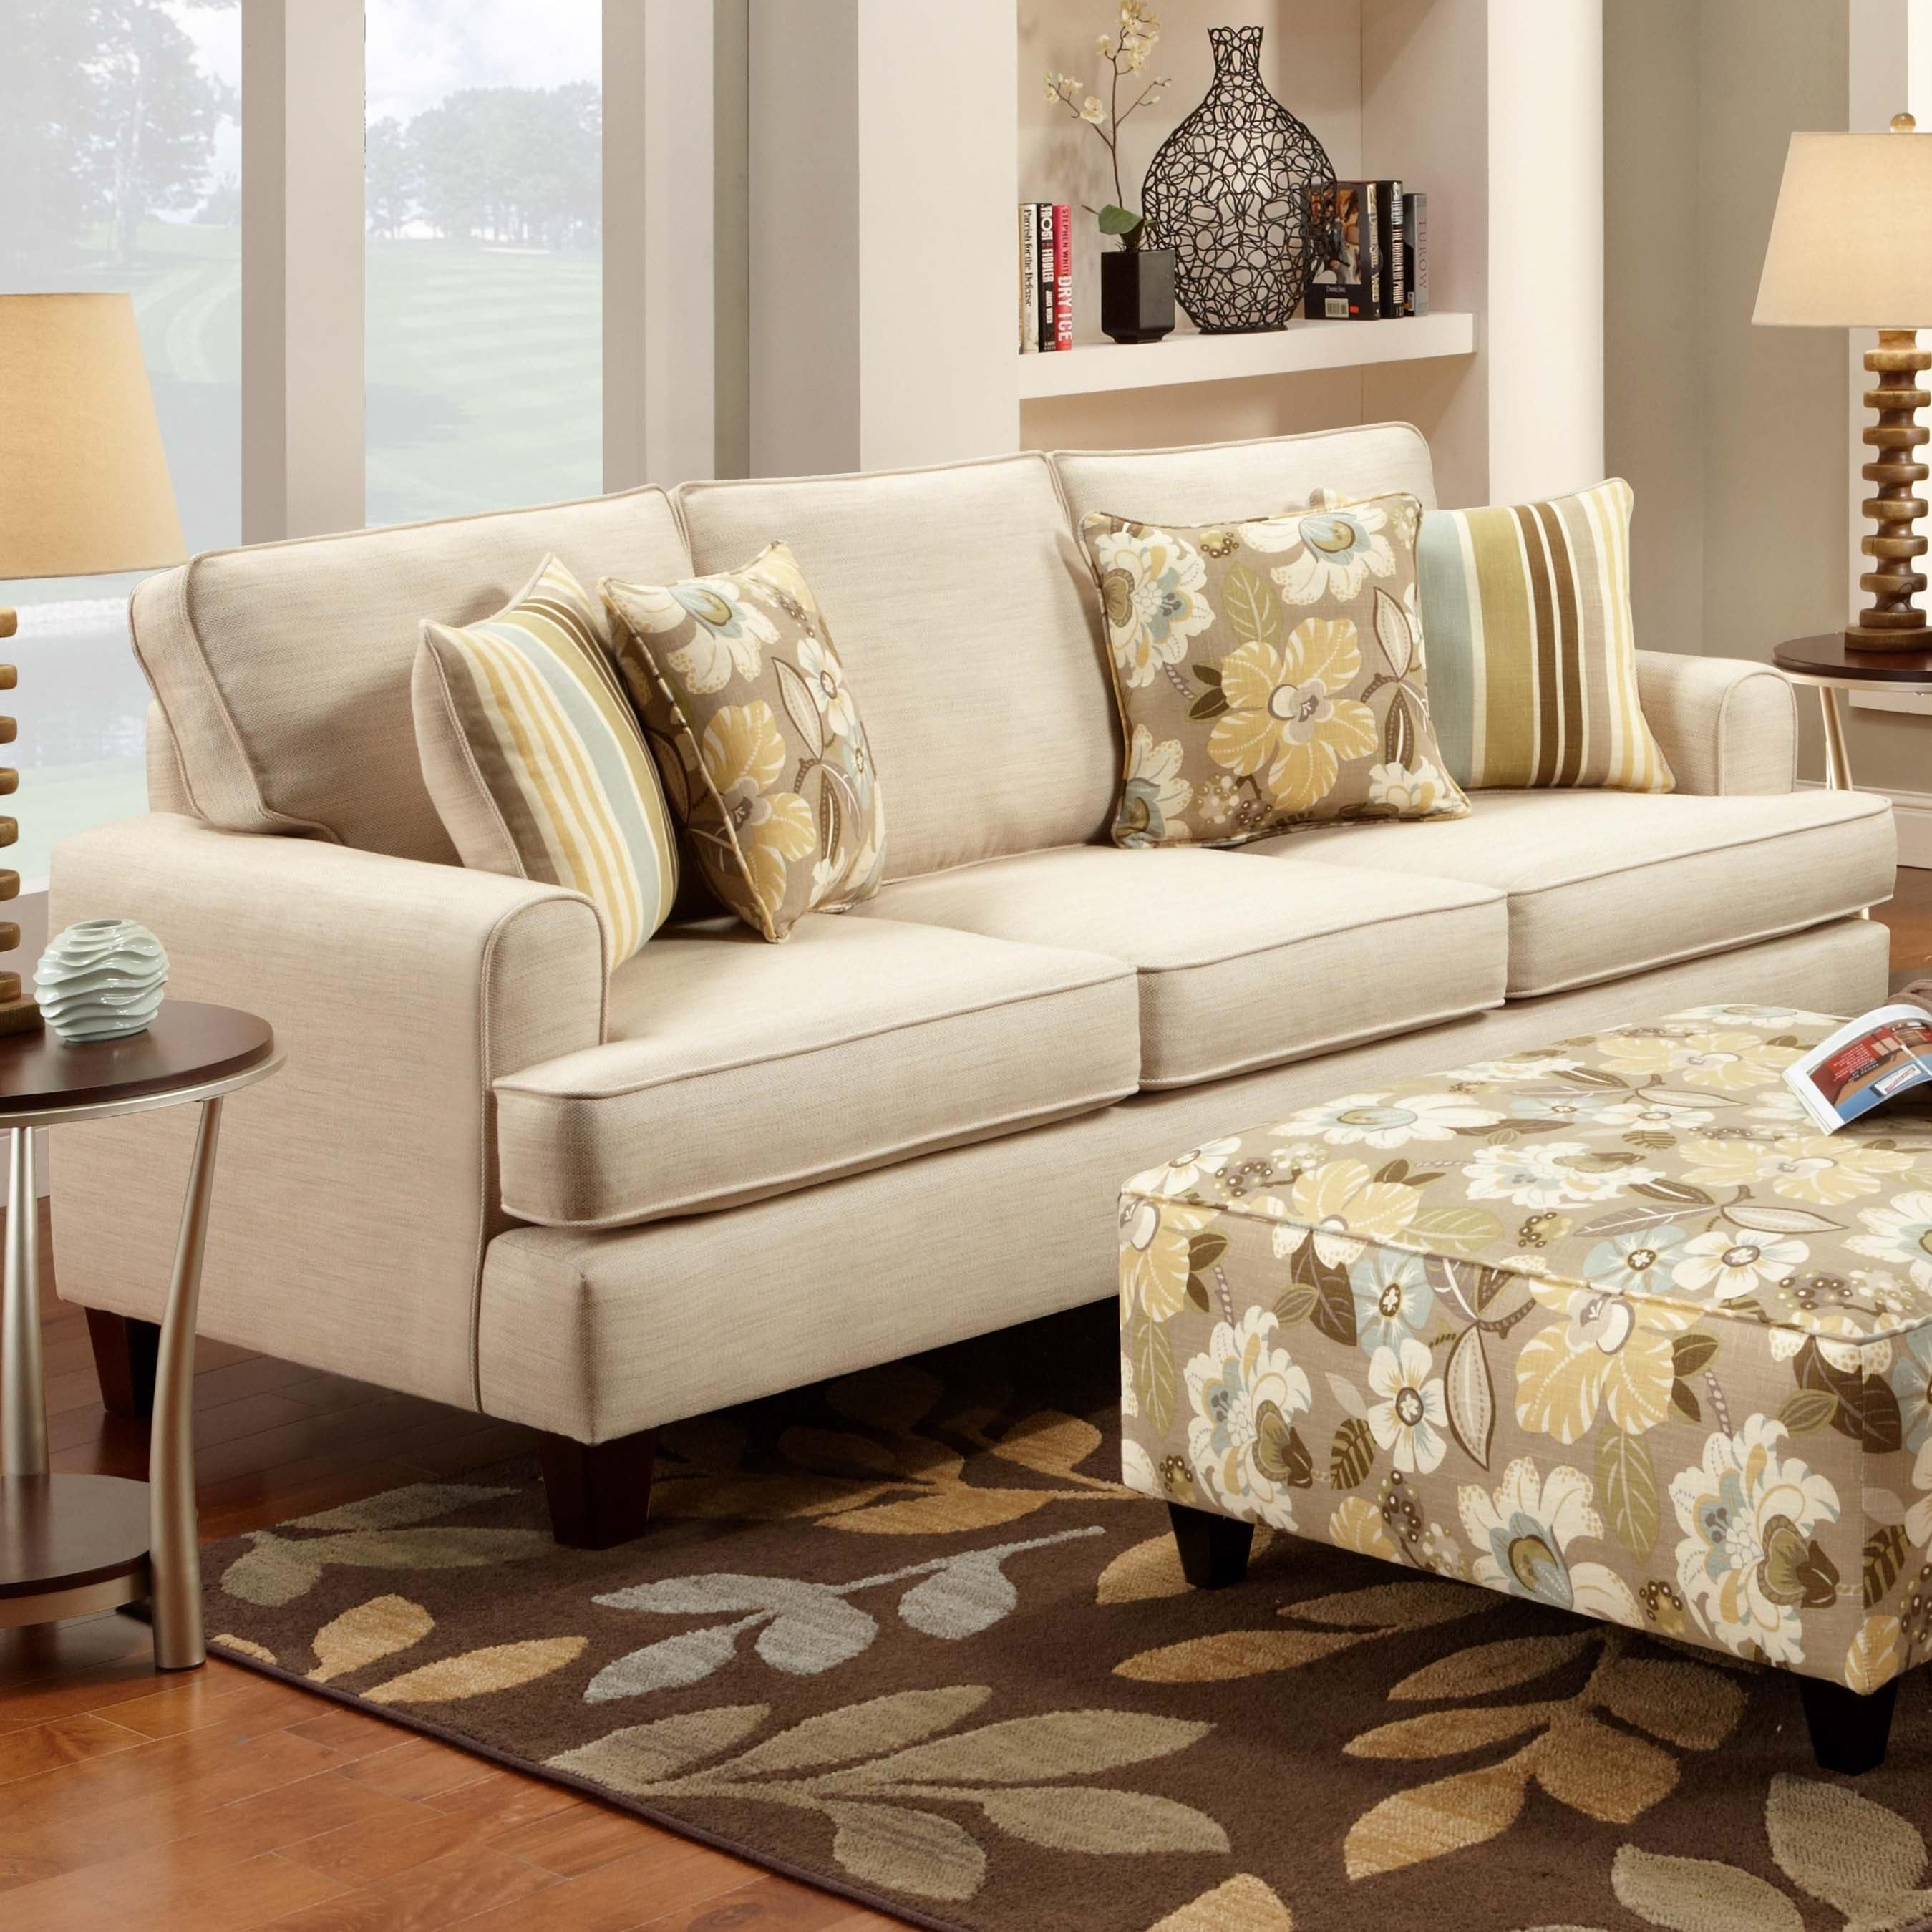 Furniture For Living Rooms: Marlo Ivory Sofa By Fusion Furniture Sku: 260071574